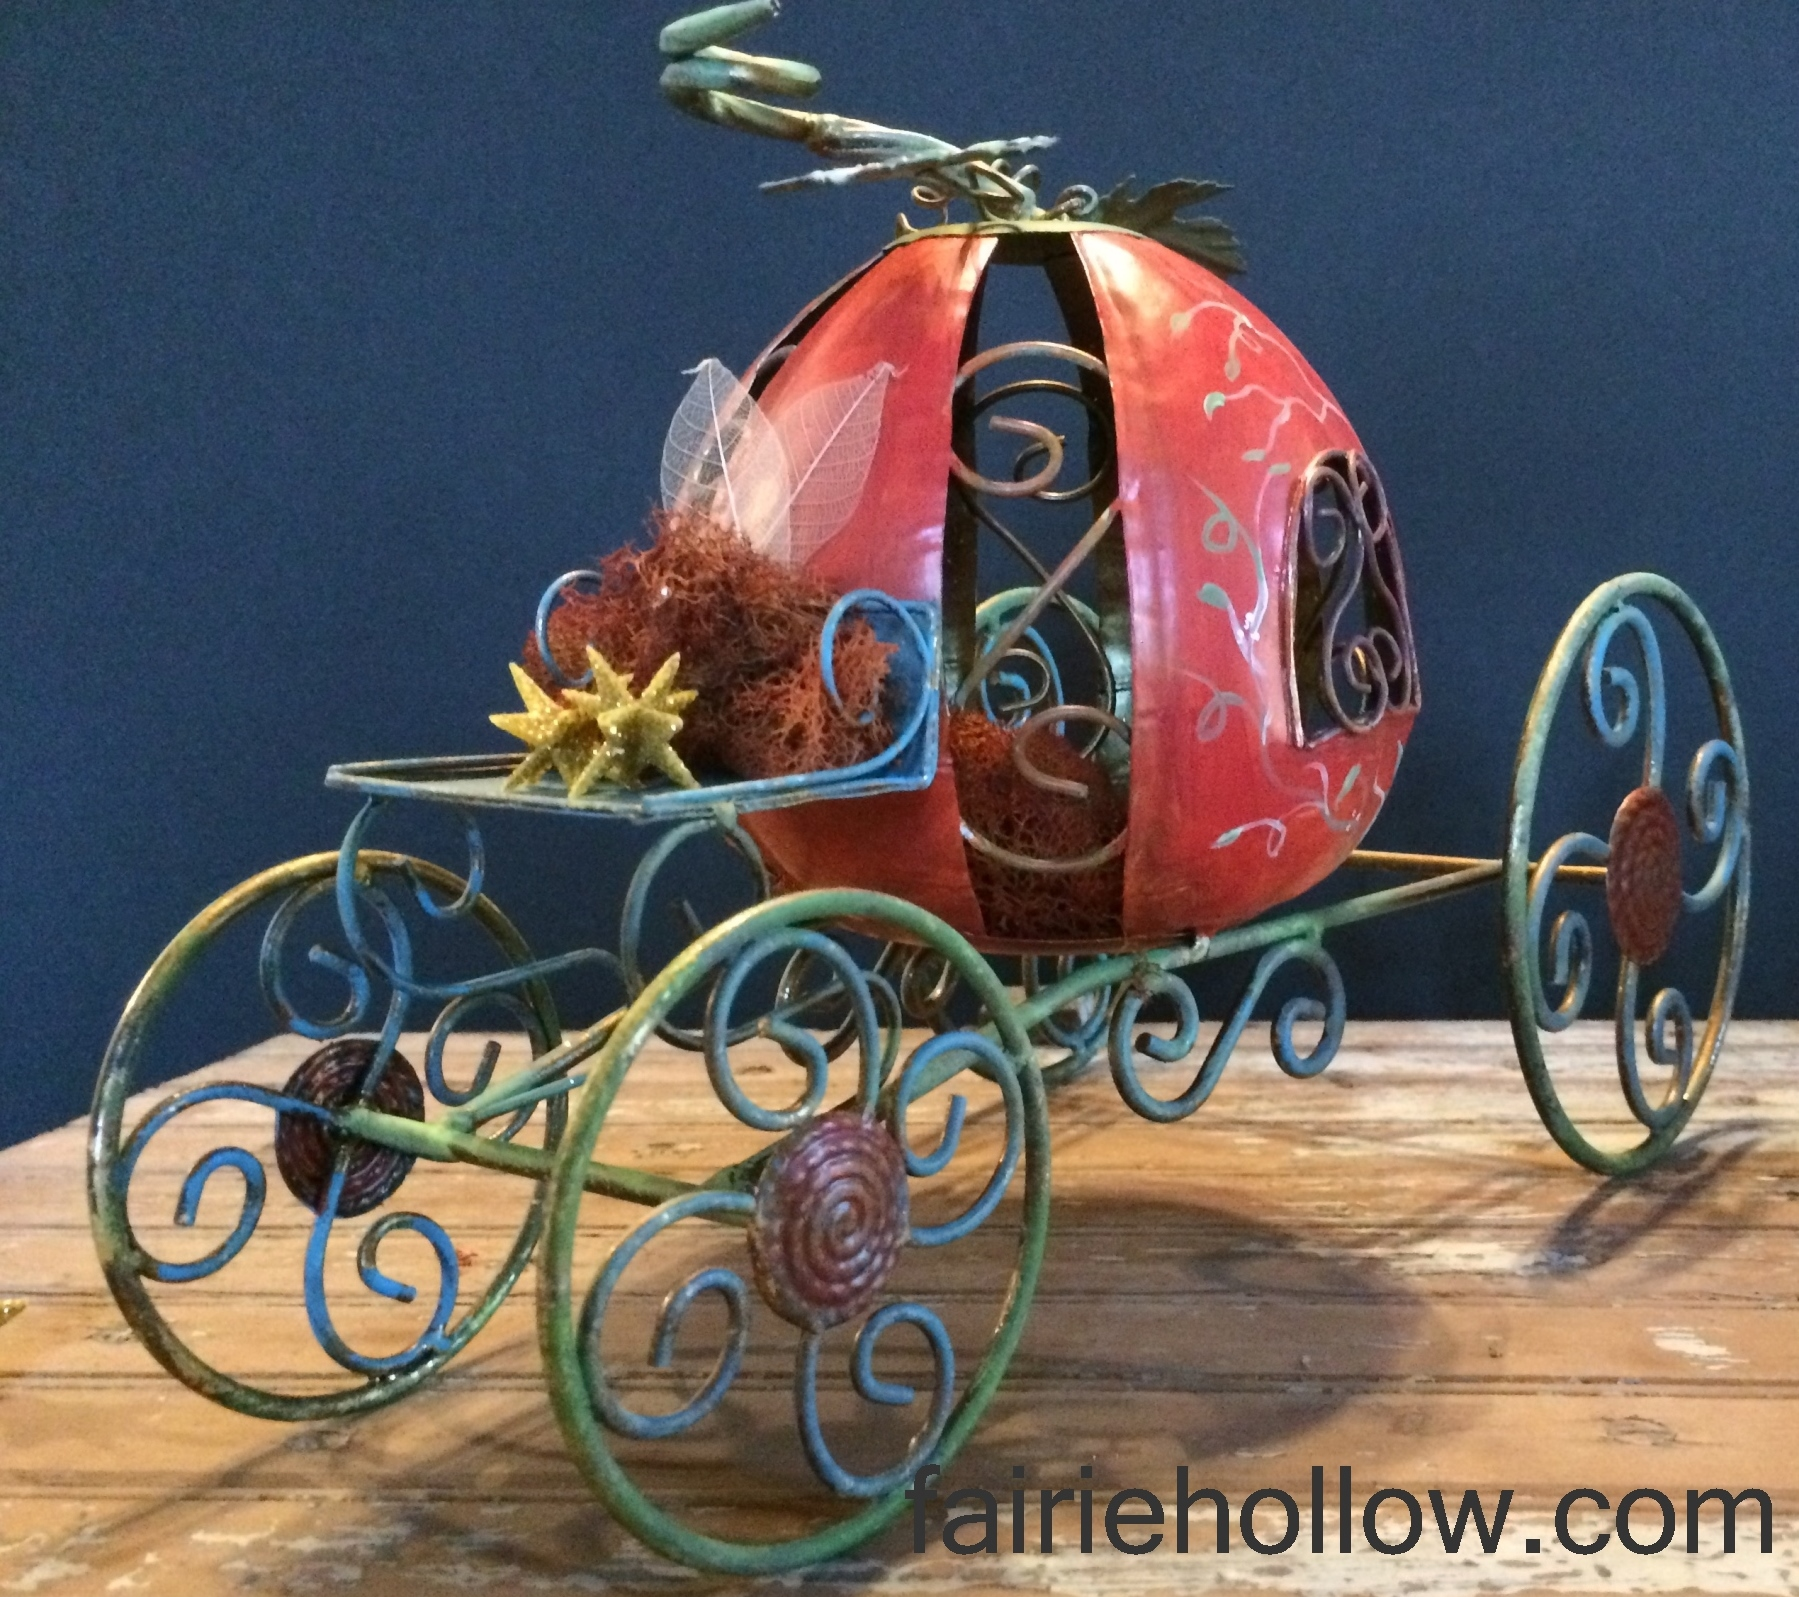 enchanted metal fairy pumpkin-carriage painted orange and green with vines